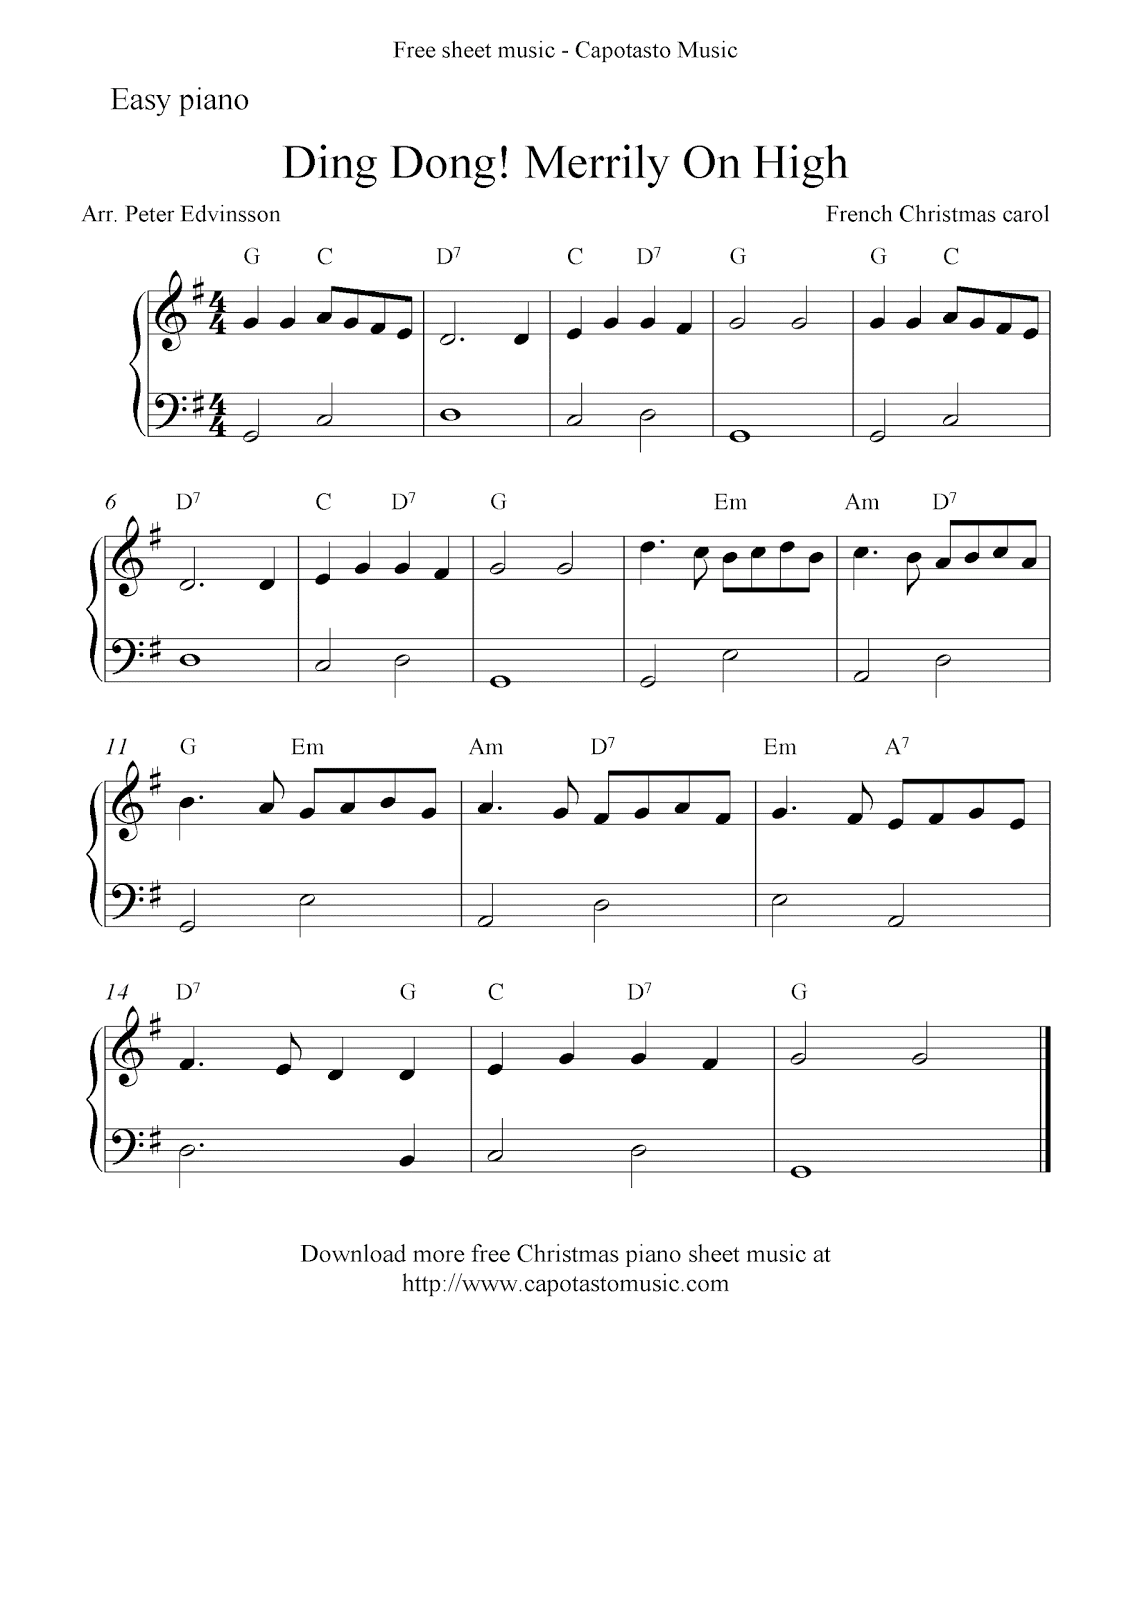 Free Christmas Sheet Music For Easy Piano Ding Dong Merrily On High Christmas Sheet Music Sheet Music Christmas Piano Sheet Music